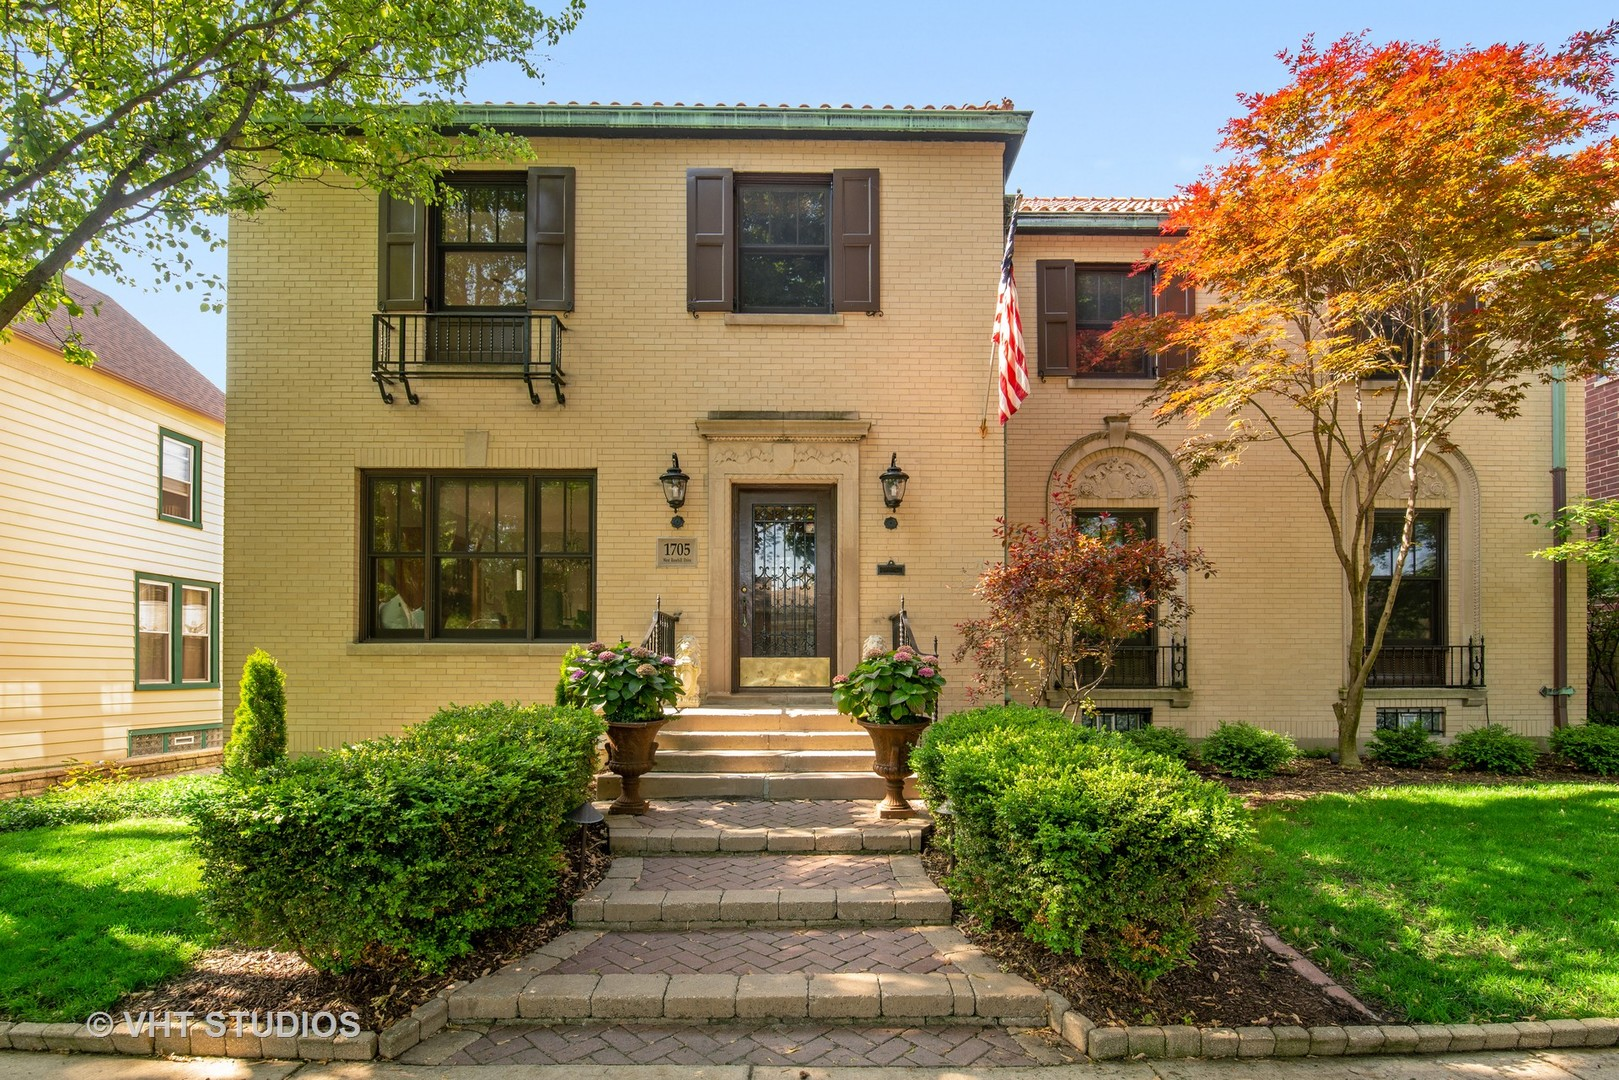 1705 WEST ROSEHILL DRIVE, CHICAGO, IL 60660